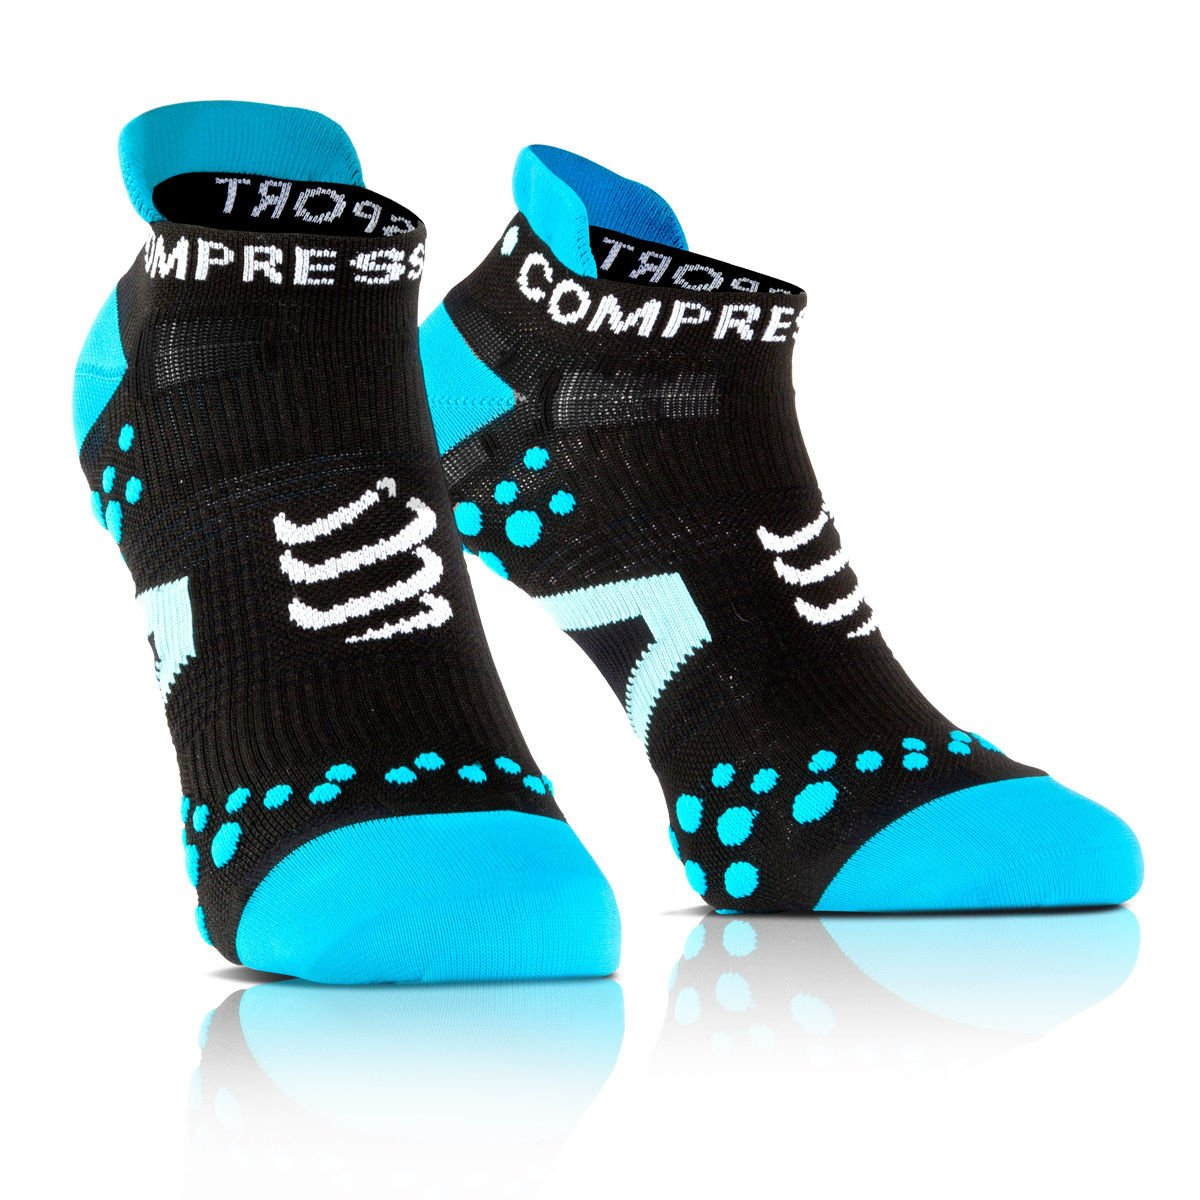 Compress port proracing Socks V2.1 Run Low Calcetines Deportivos Deportes Correr Bicicleta COMPRESSPORT